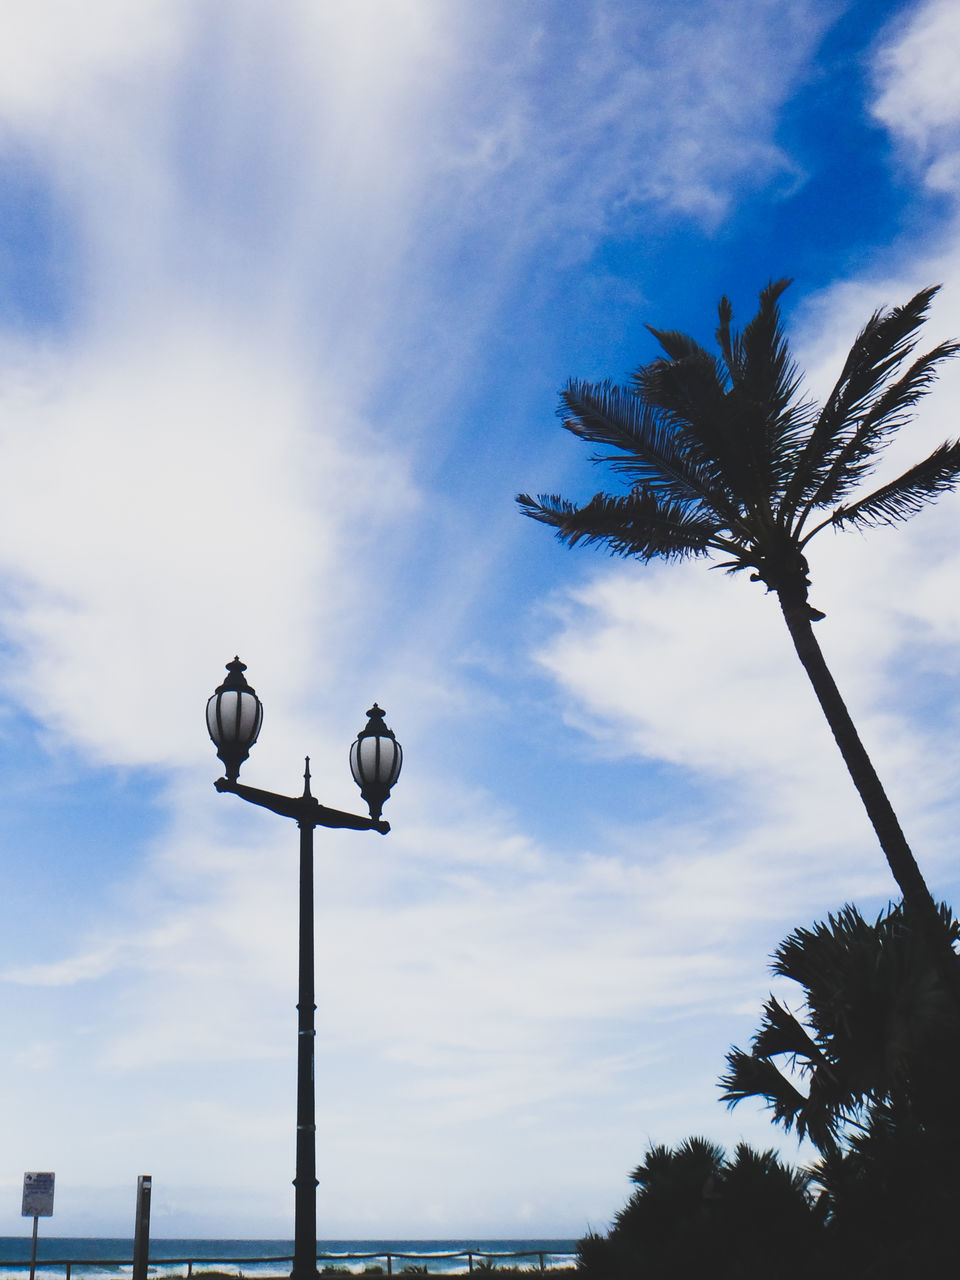 cloud - sky, sky, street light, low angle view, outdoors, no people, palm tree, day, bird, animals in the wild, nature, animal themes, perching, beauty in nature, tree